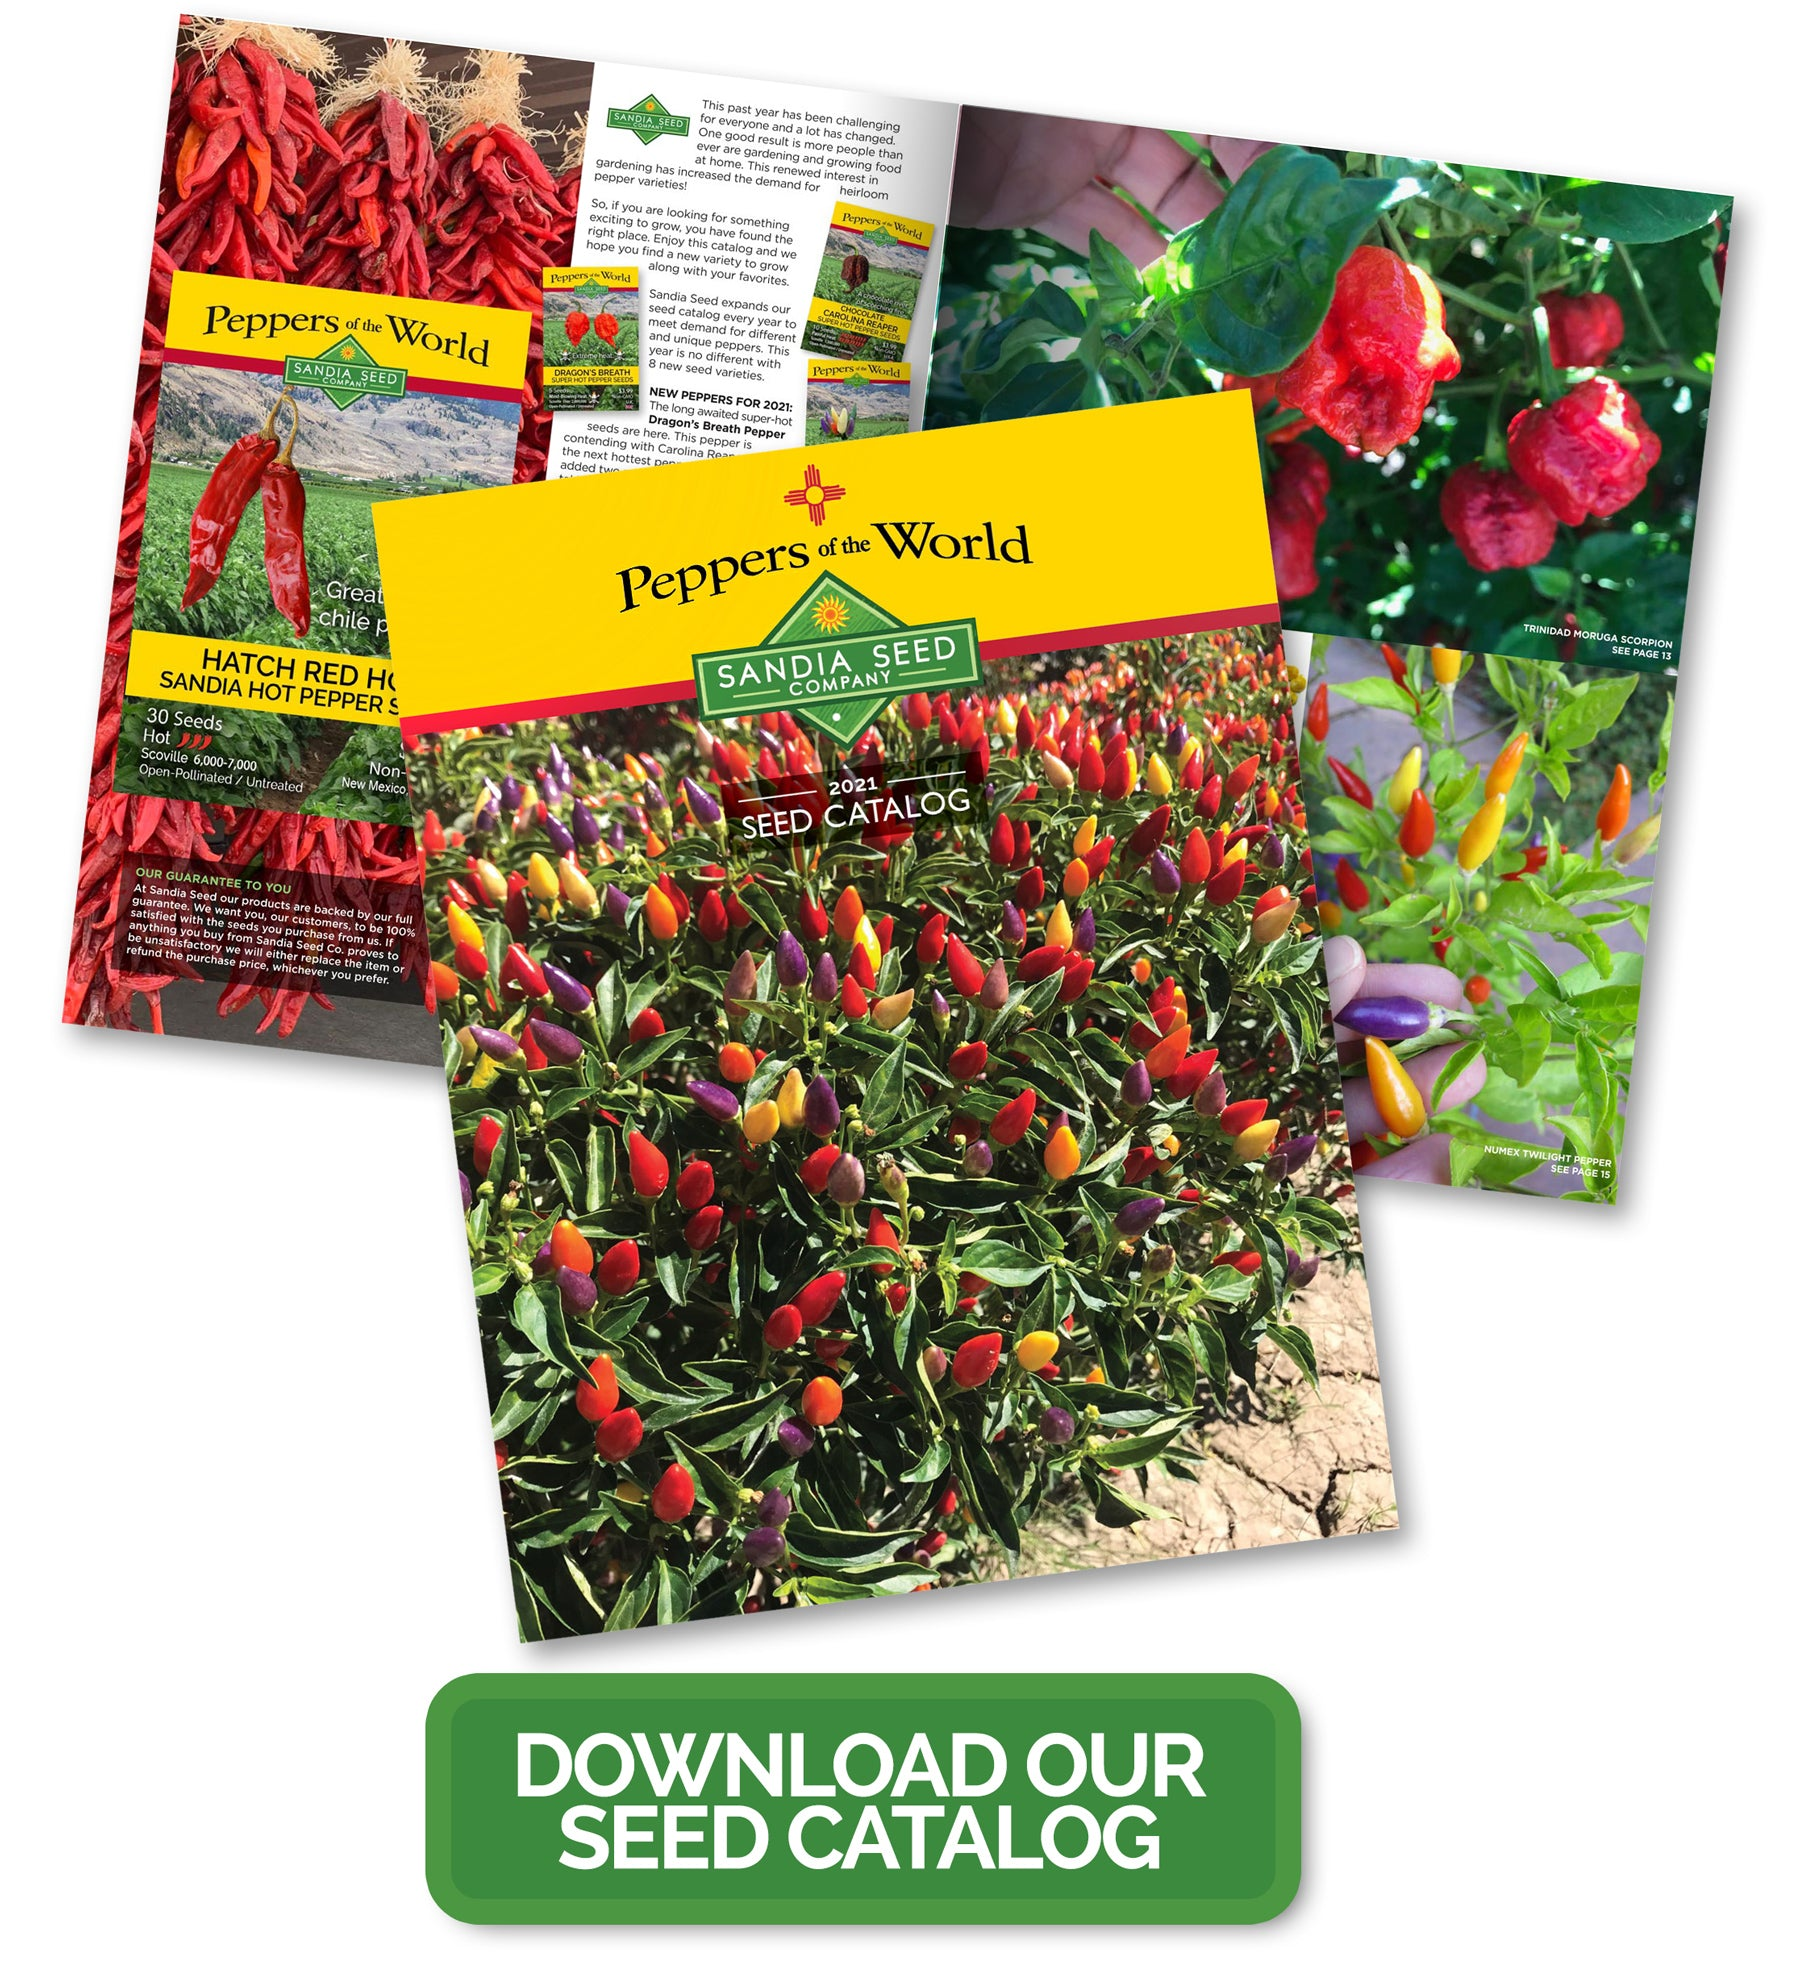 2021 Seed Catalog from Sandia Seed - Download PDF